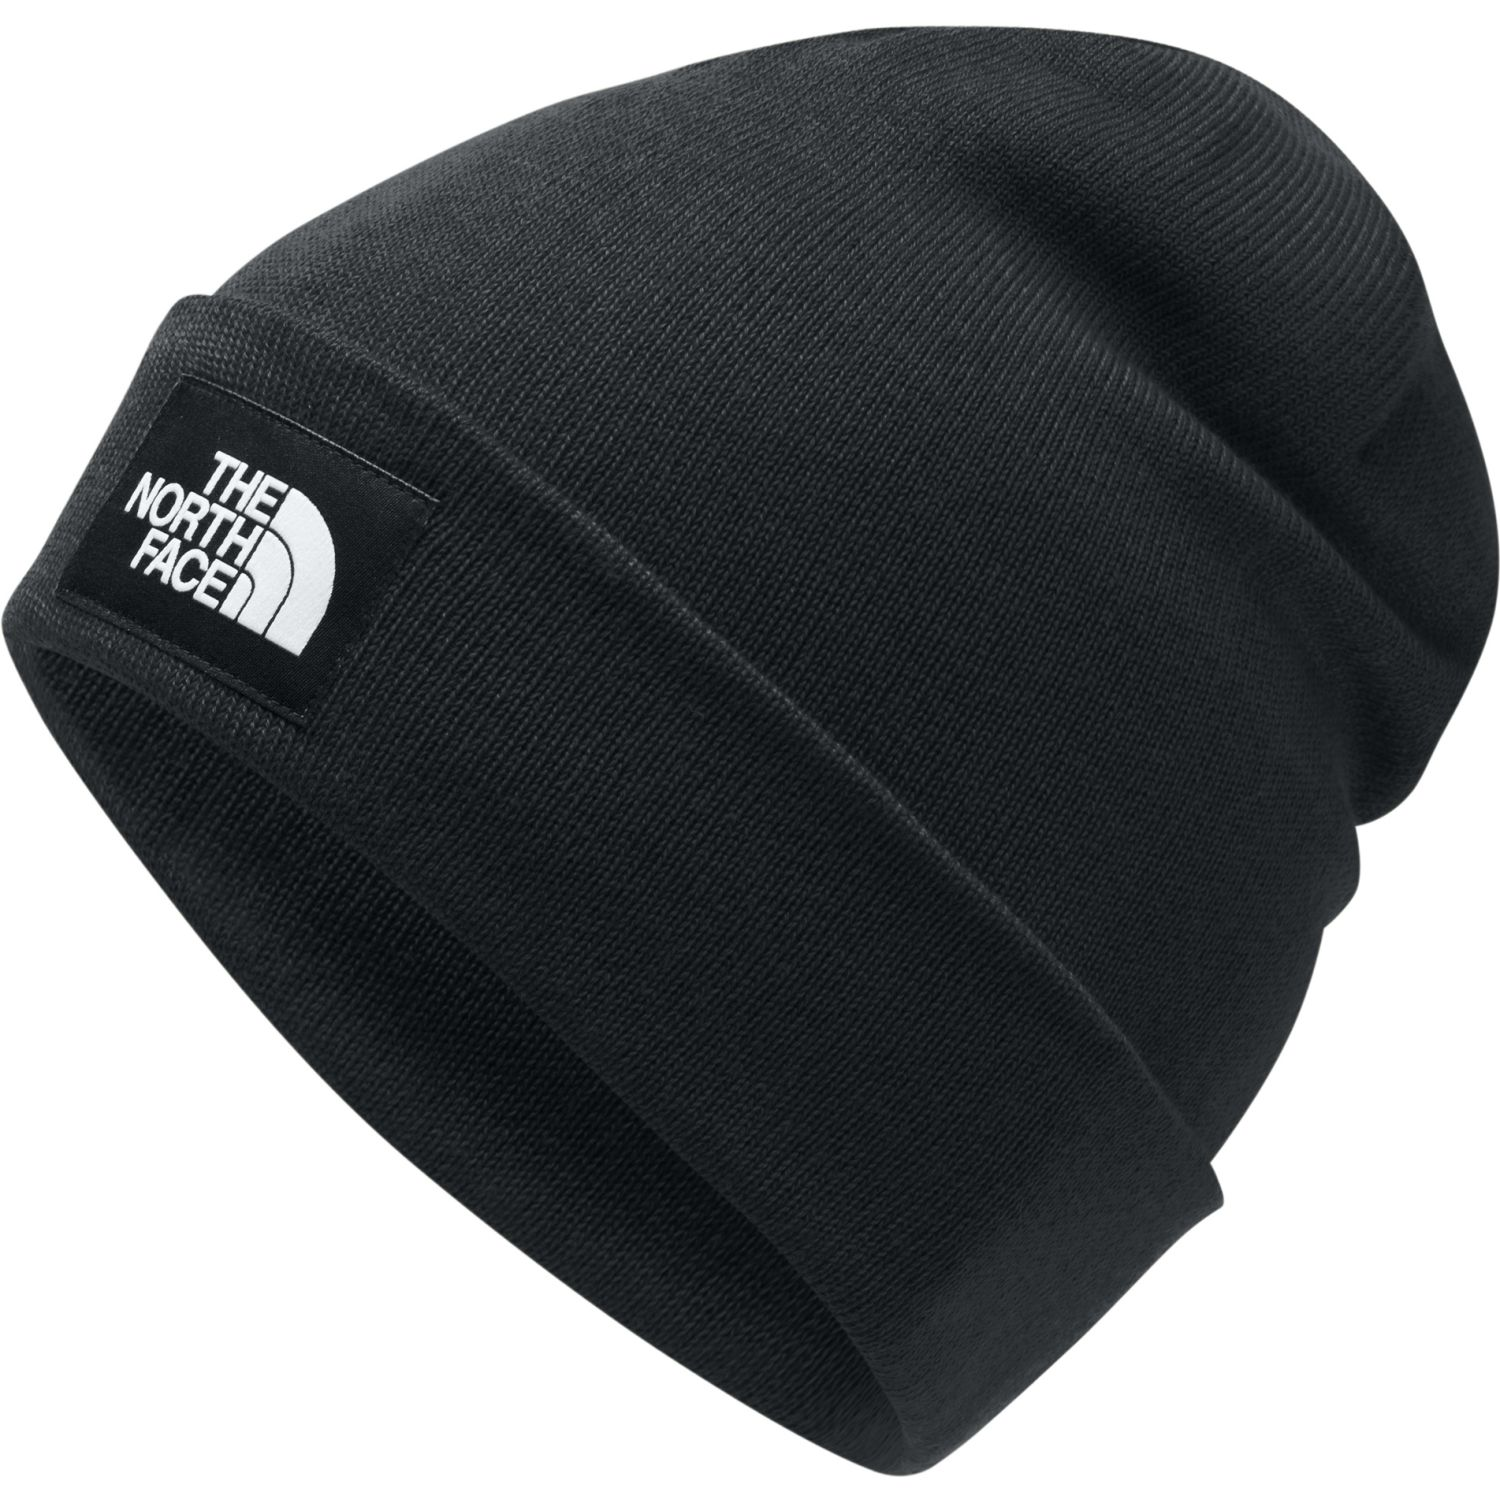 The North Face Dock Worker Recycled Beanie Negro Chullos y gorros